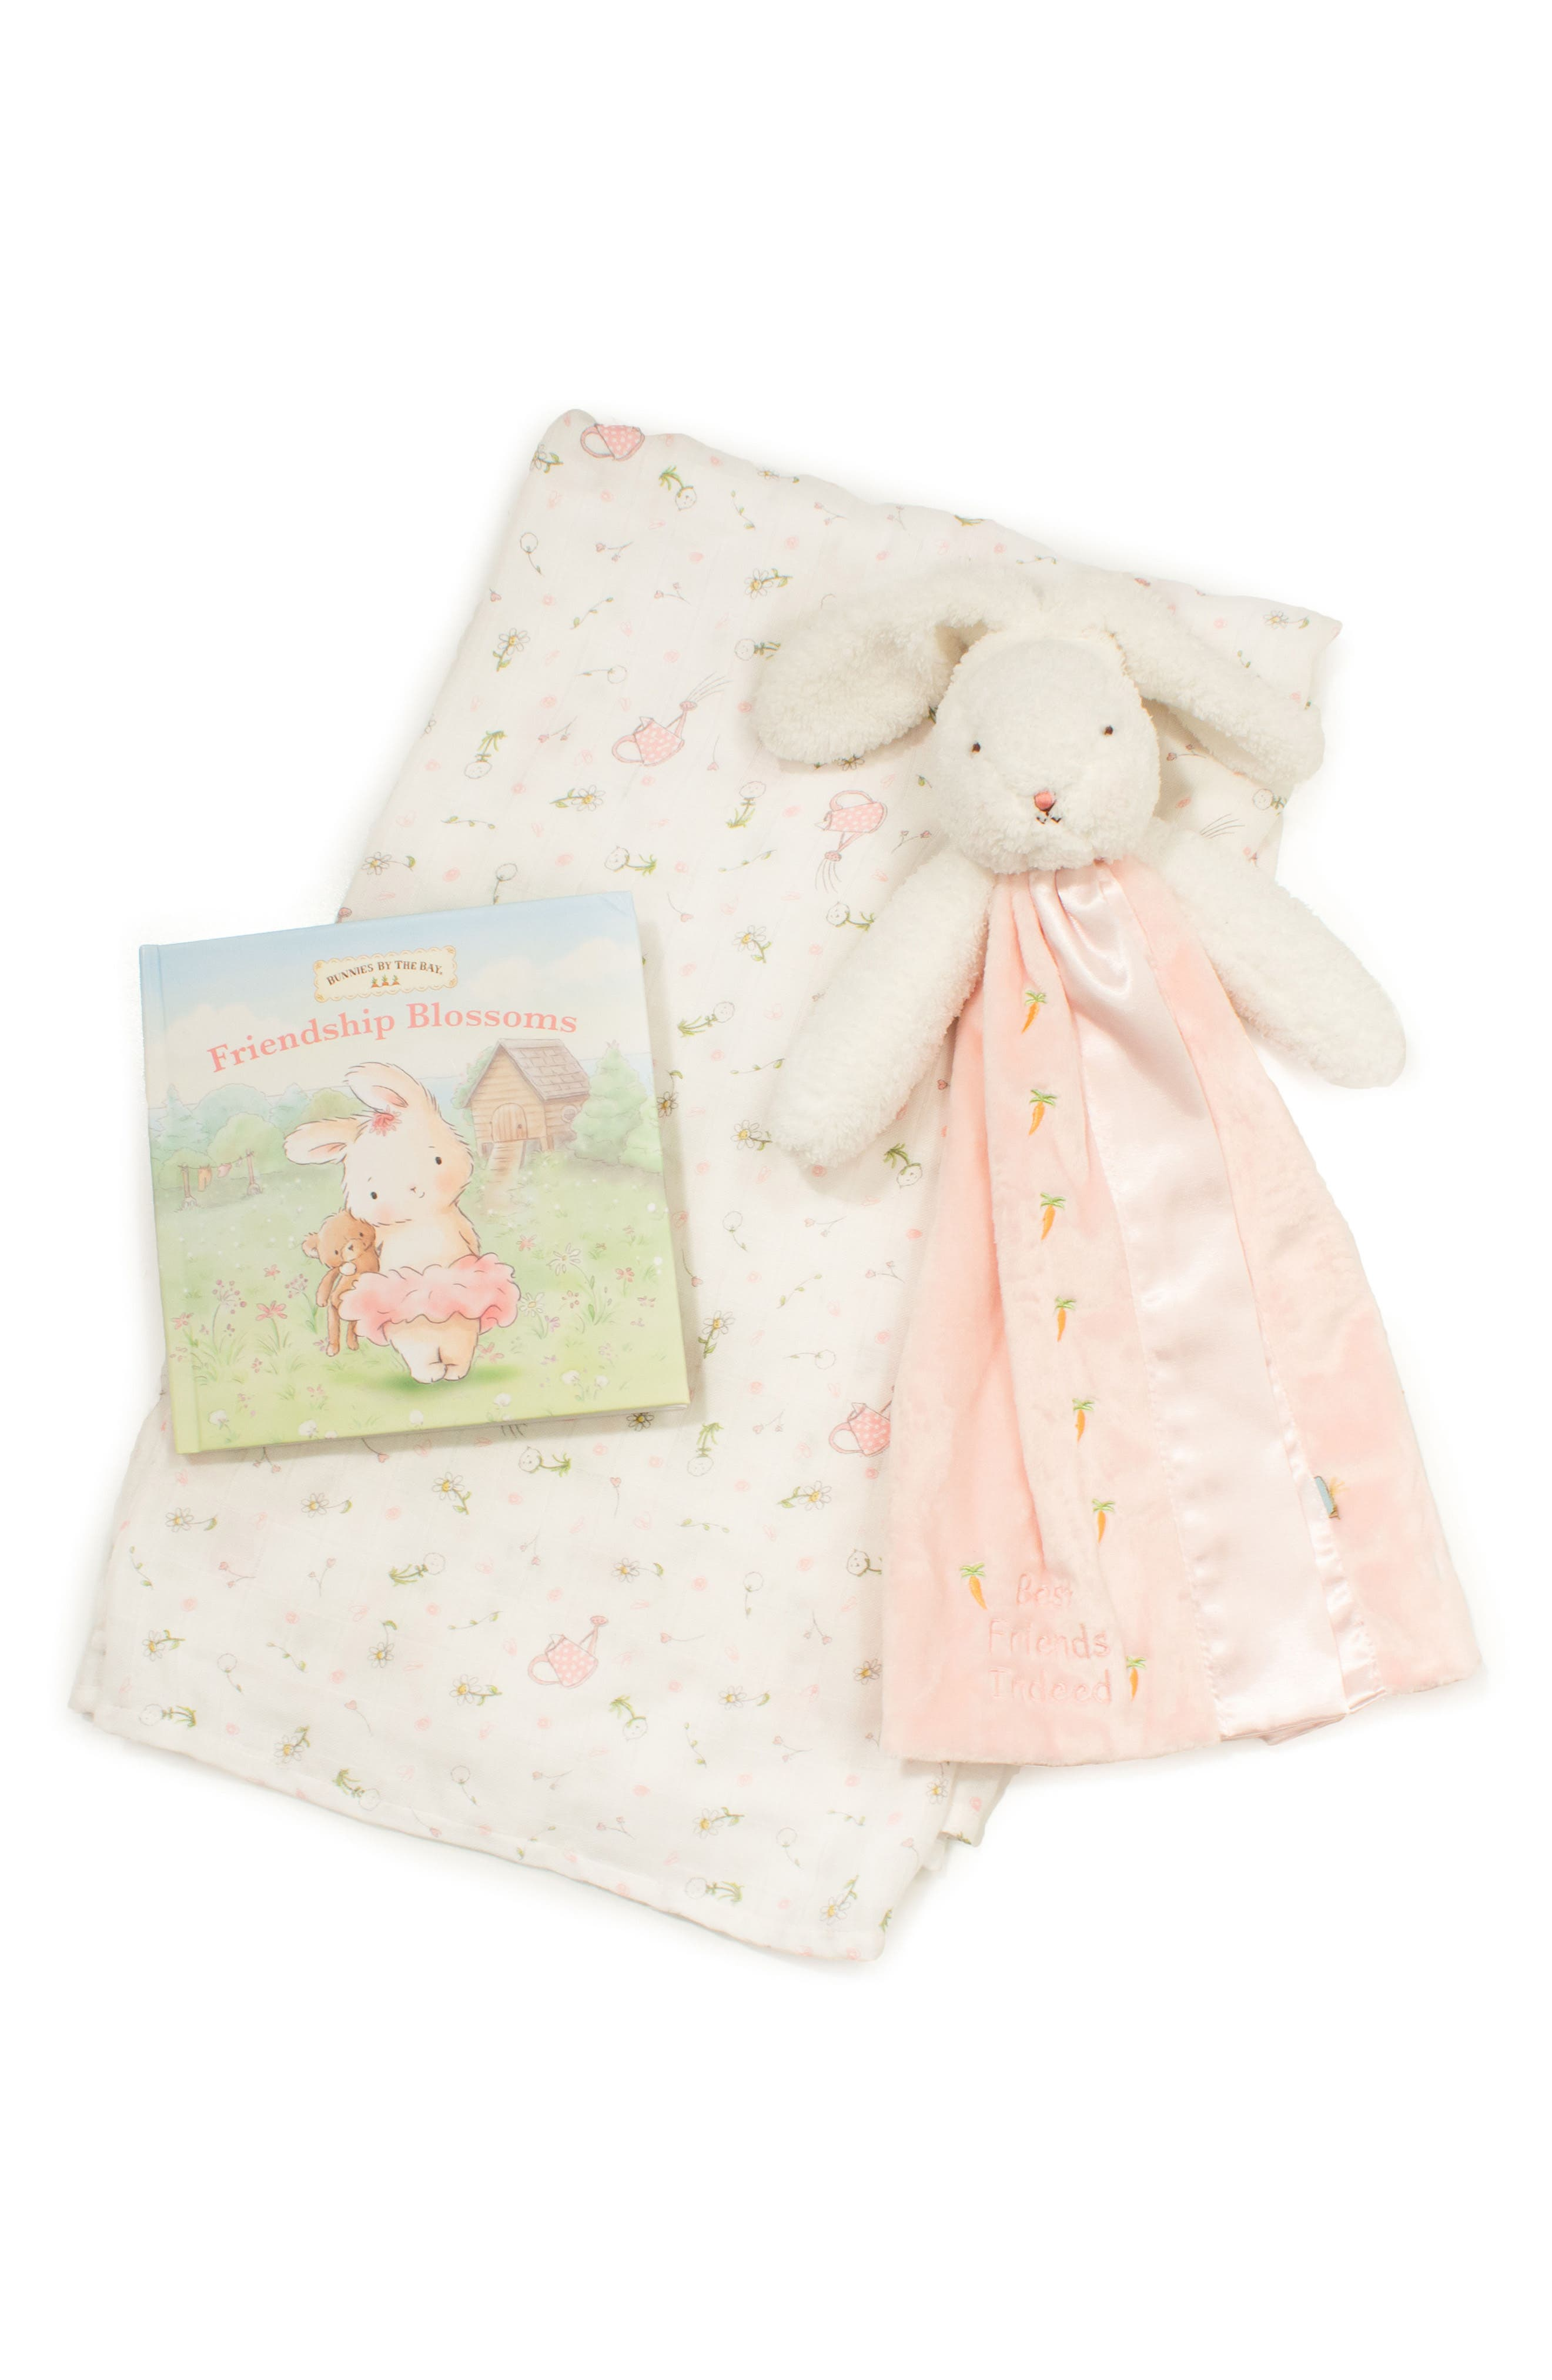 Blossom Read Me Another One 3-Piece Gift Set,                             Main thumbnail 1, color,                             Blossom Pink